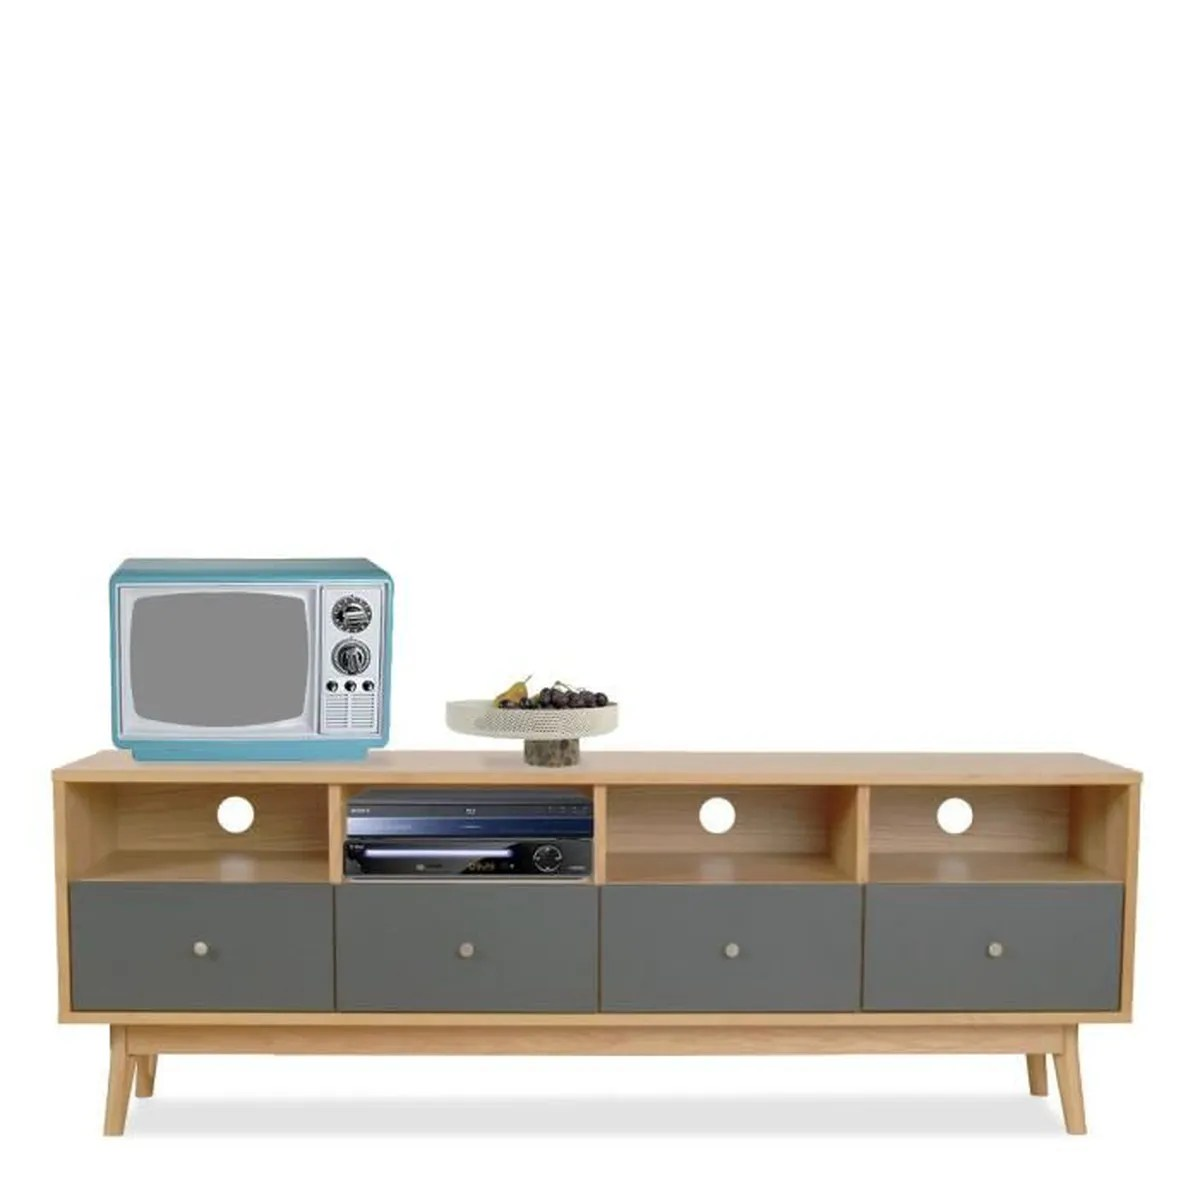 Meuble Tv Scandinave Design Meuble Tv Design Scandinave 4 Tiroirs Skoll Couleur Gris